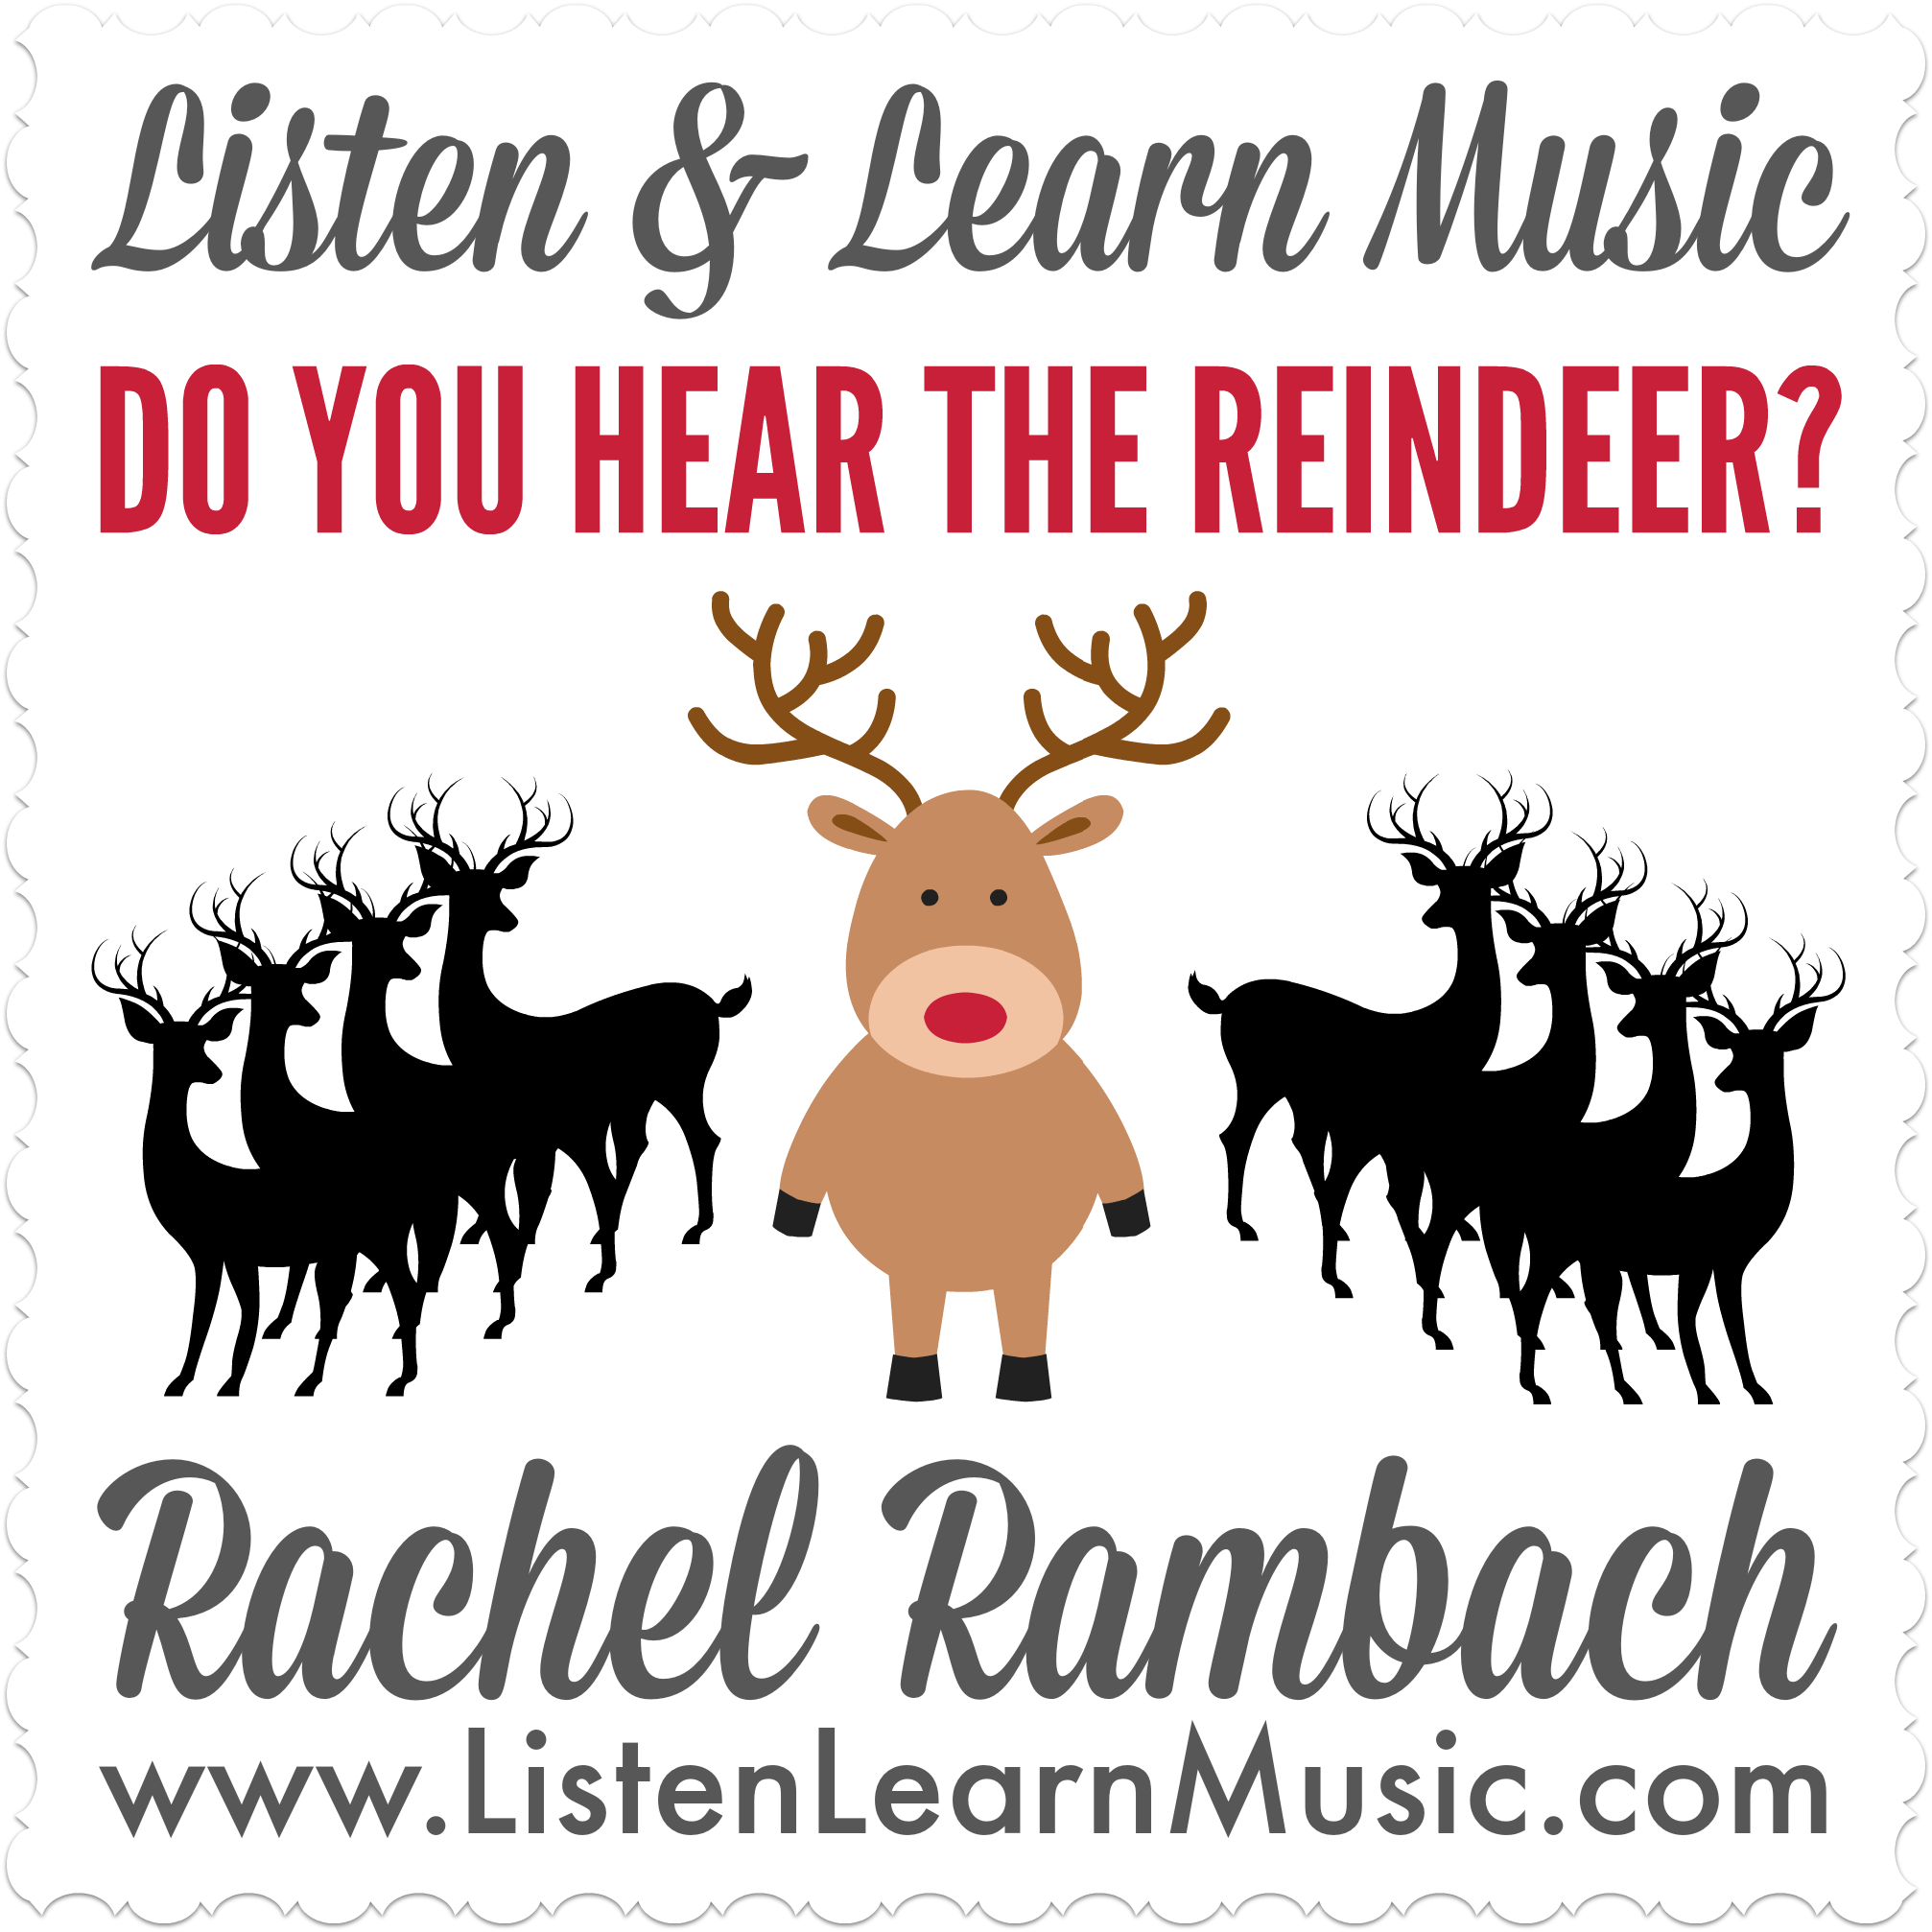 Do You Hear the Reindeer? | Listen & Learn Music